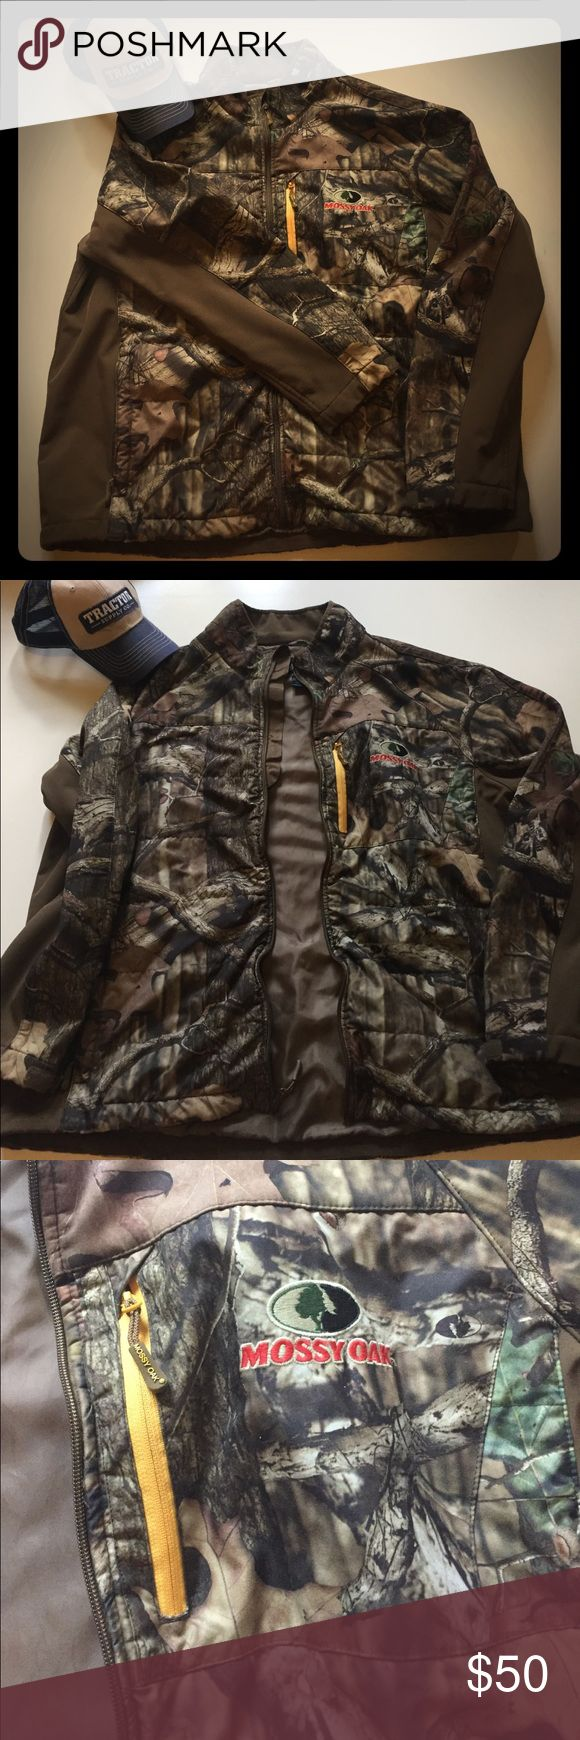 NWOT Men's Missy Oak Jacket This warm winter jacket doesn't get much use as we live in Florida. I don't know that he has ever worn it. It is break-up mossy oak with brown side trim, and yellow on the zipper of the front pocket. It's in excellent condition! I don't trade, but feel free to make an offer! Mossy Oak Jackets & Coats